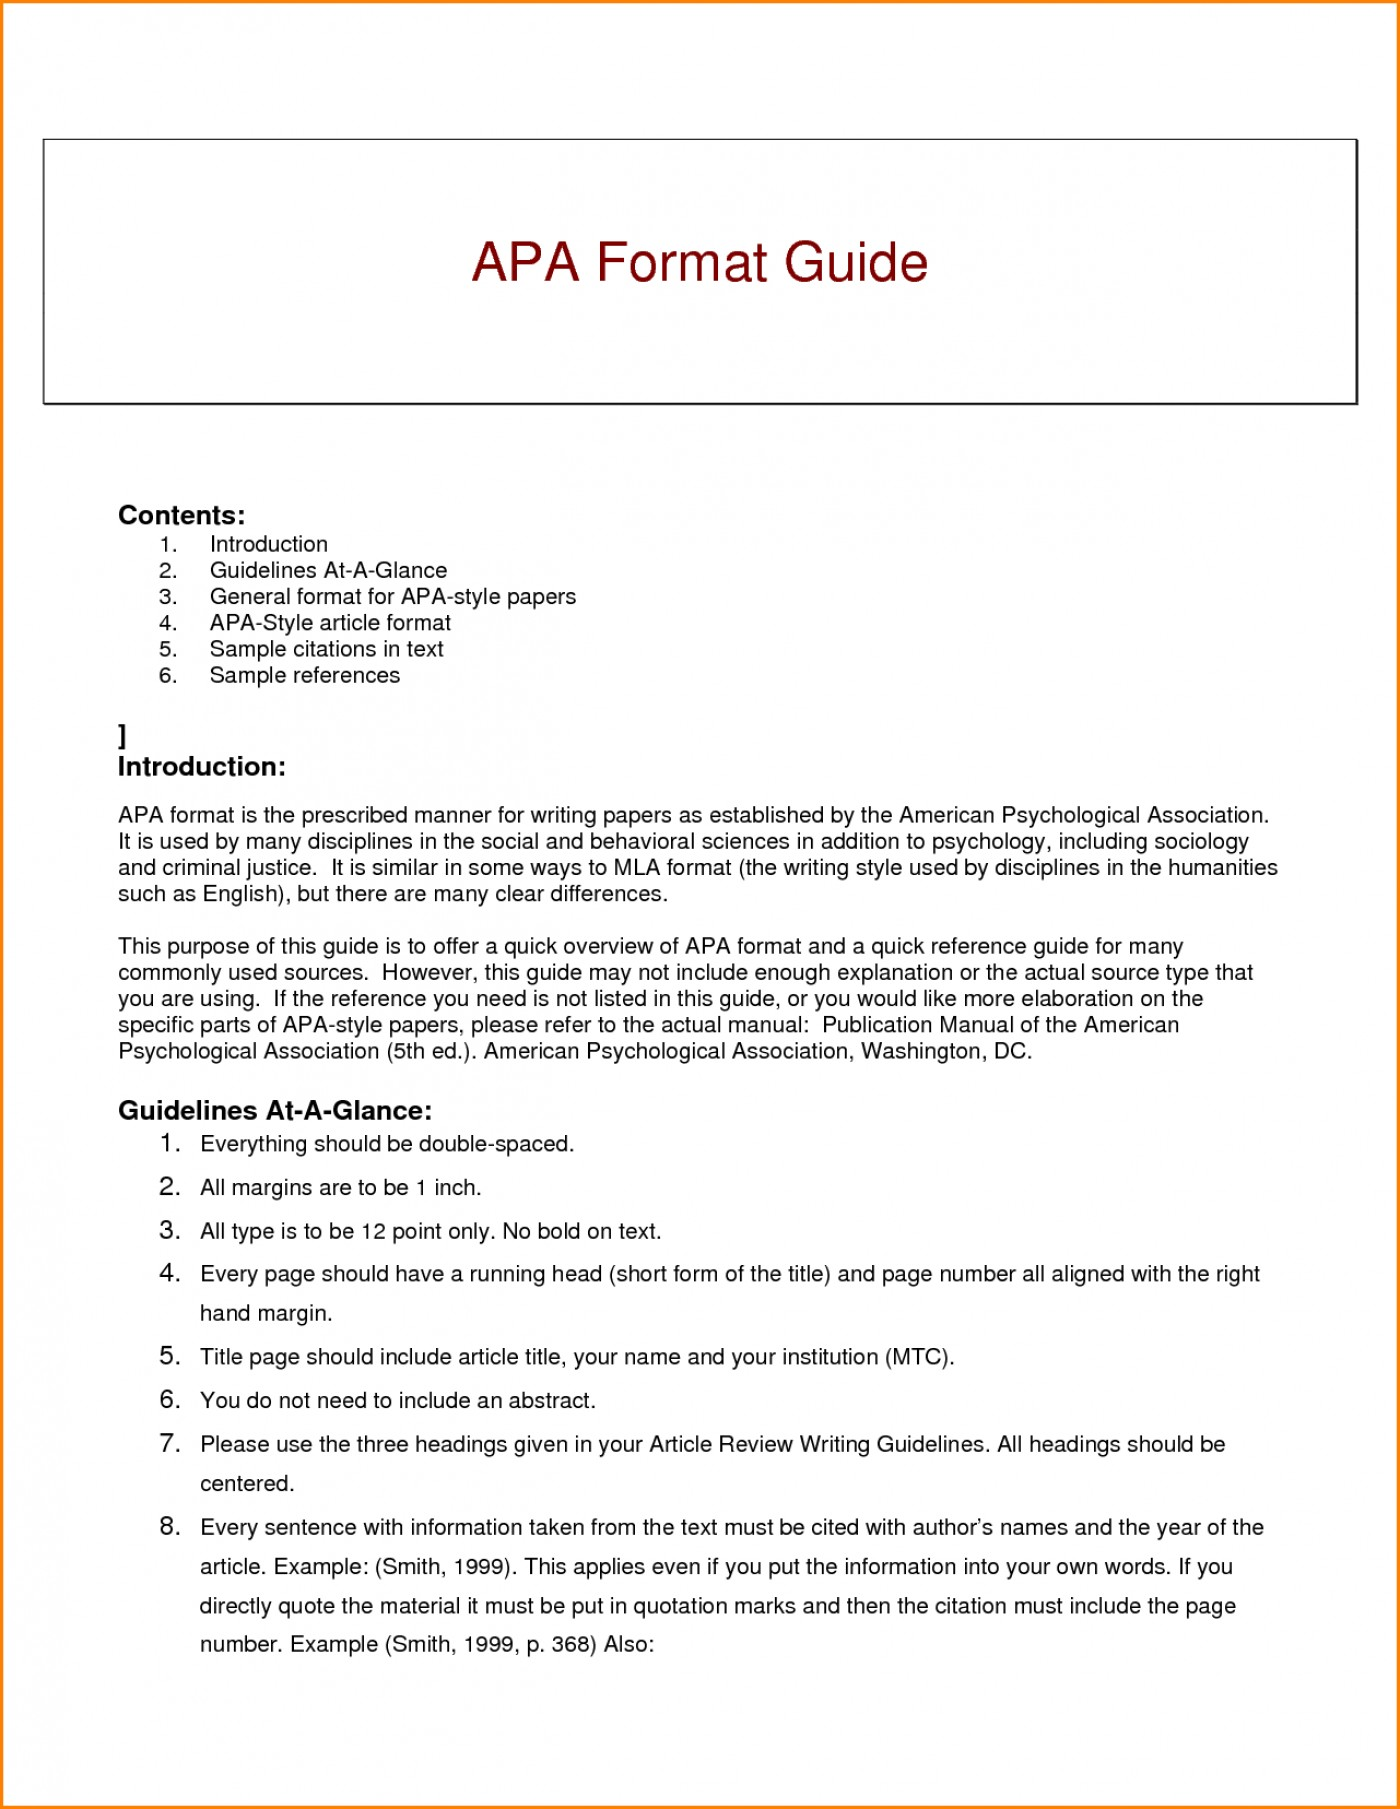 018 How Do I Cite Research Paper In Apa Format Staggering A To Sources 1400